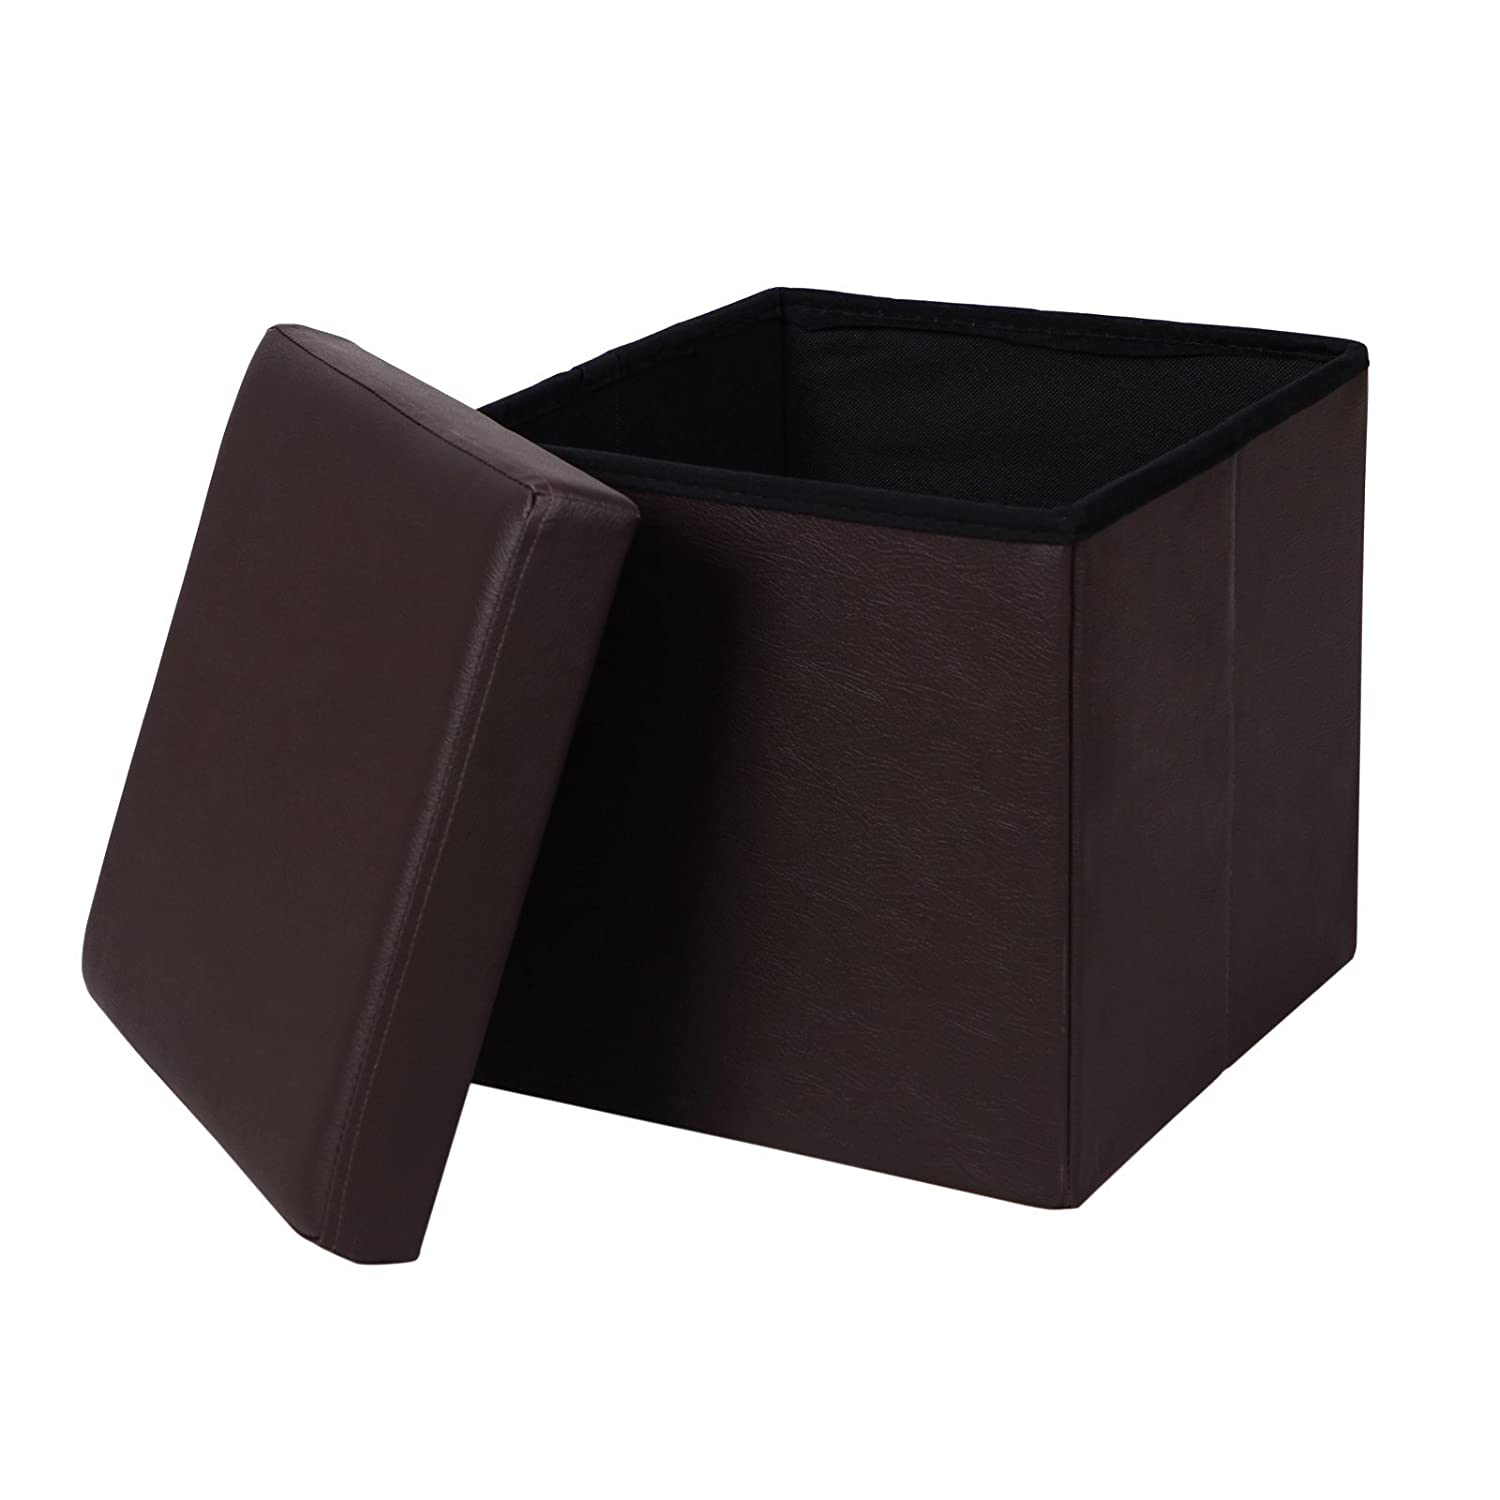 SONGMICS Faux Leather Folding Storage Ottoman Cube Foot Rest Stool Seat 14  7/8